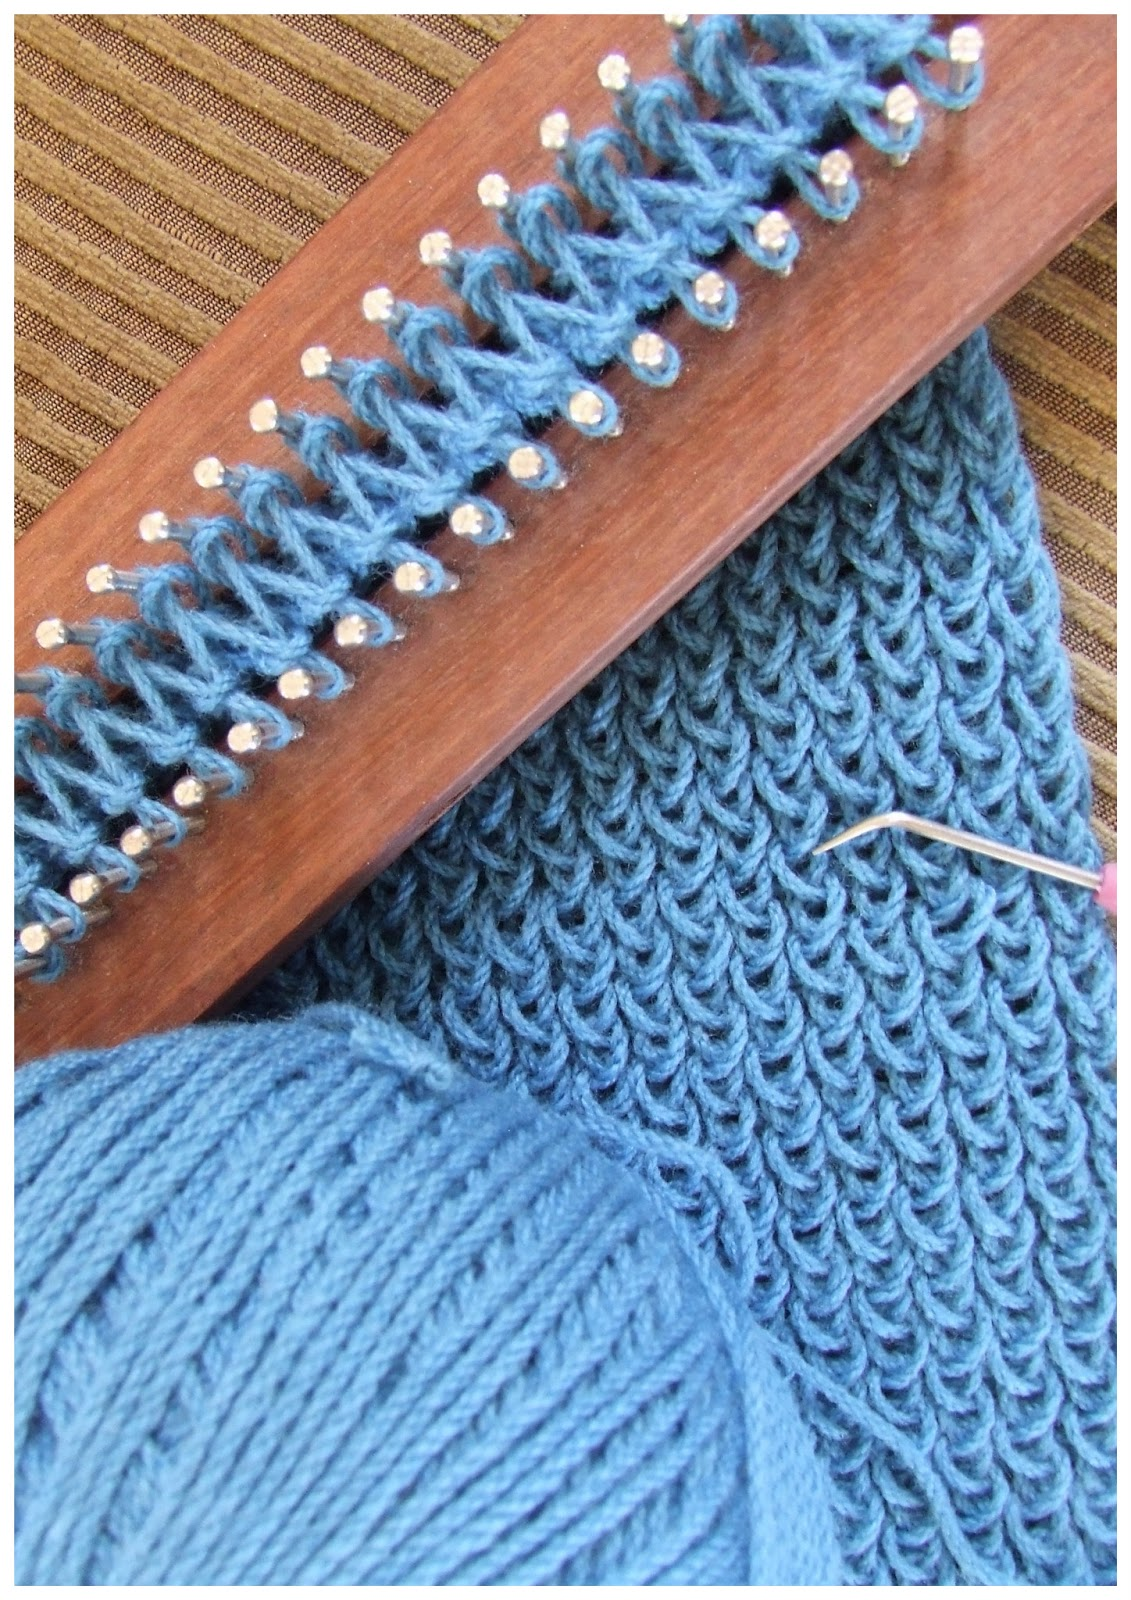 Crocheting On A Loom : FitzBirch Crafts: Loom Knitting